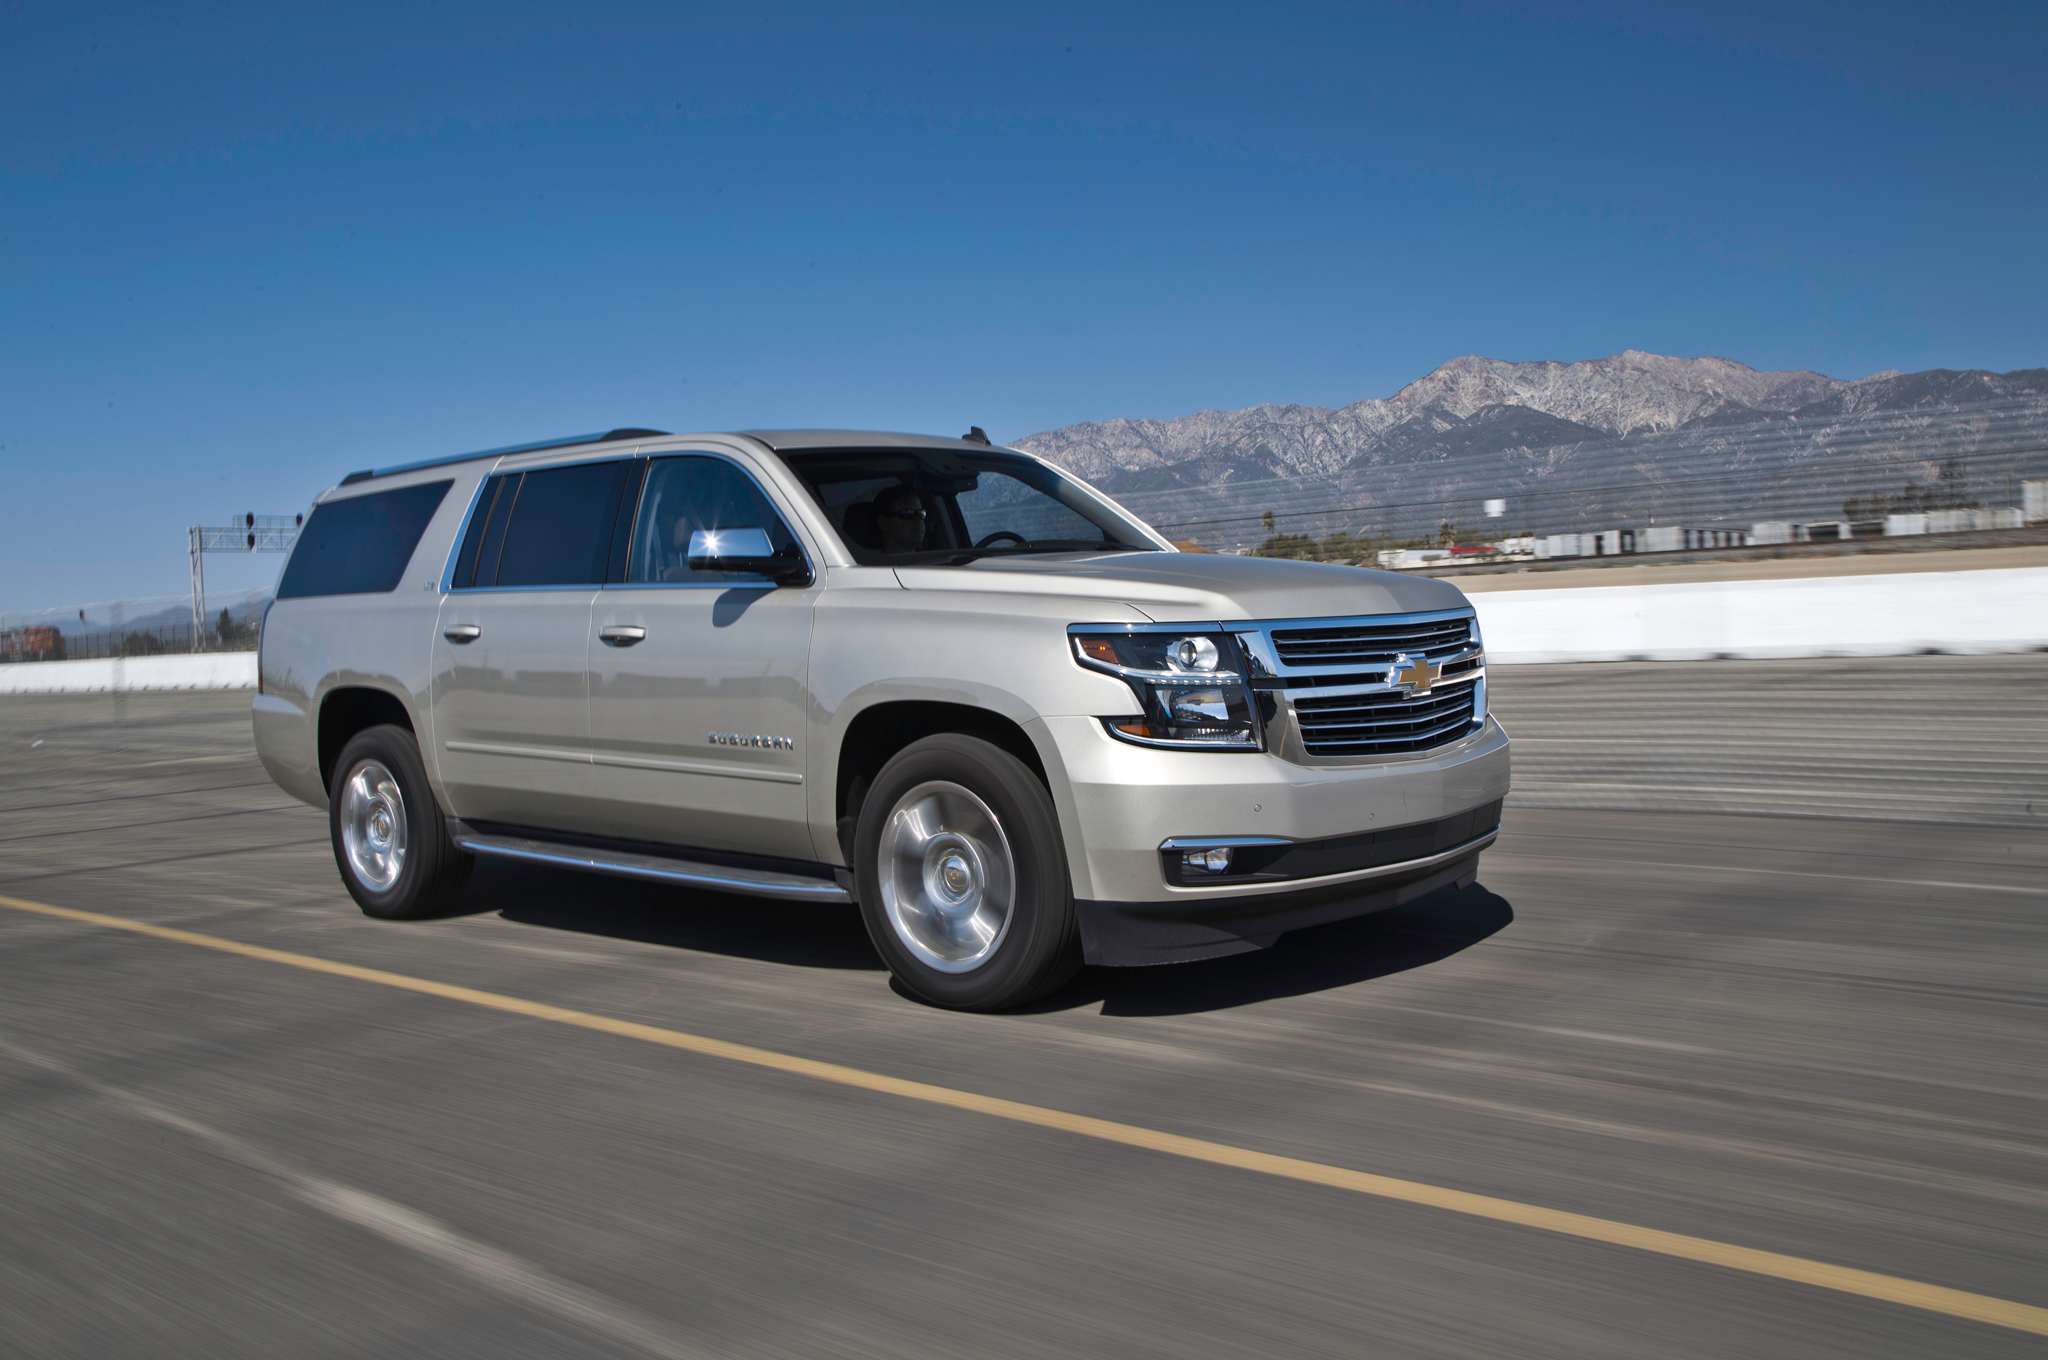 2015 Chevrolet Suburban Test Ride (Photo 33 of 33)